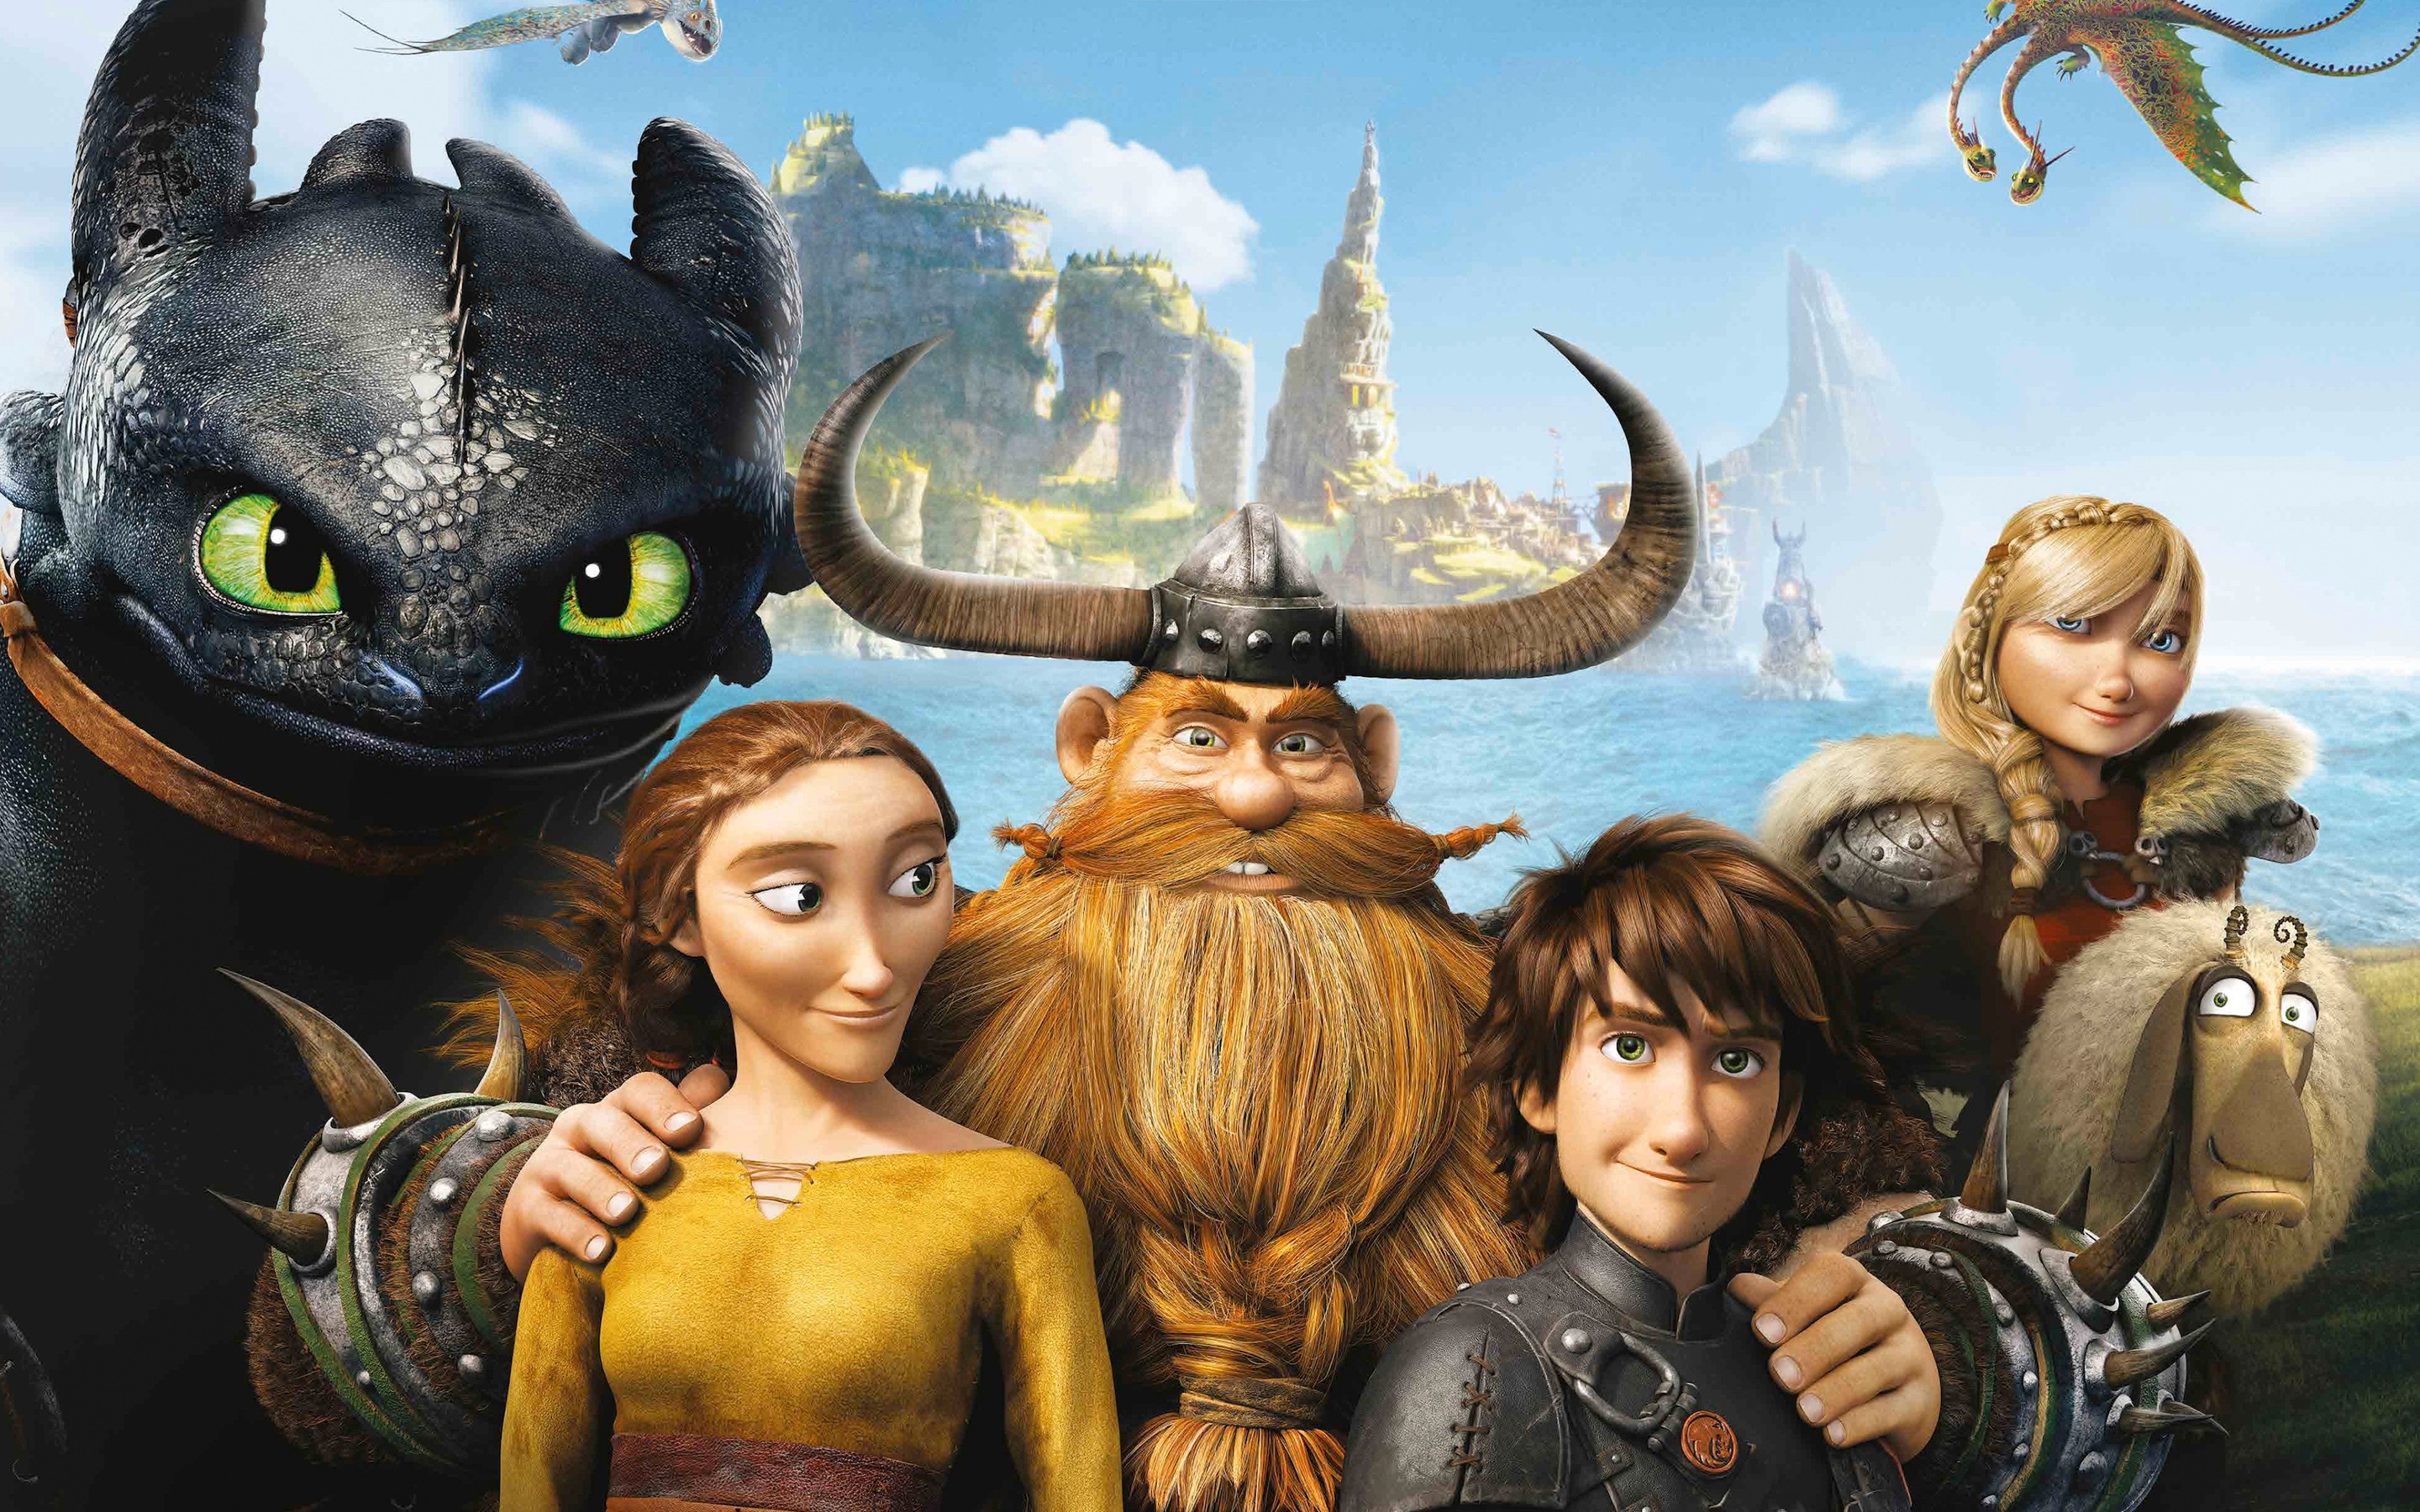 3840x2160 how to train your dragon banner 4k hd 4k - How to train your dragon hd download ...